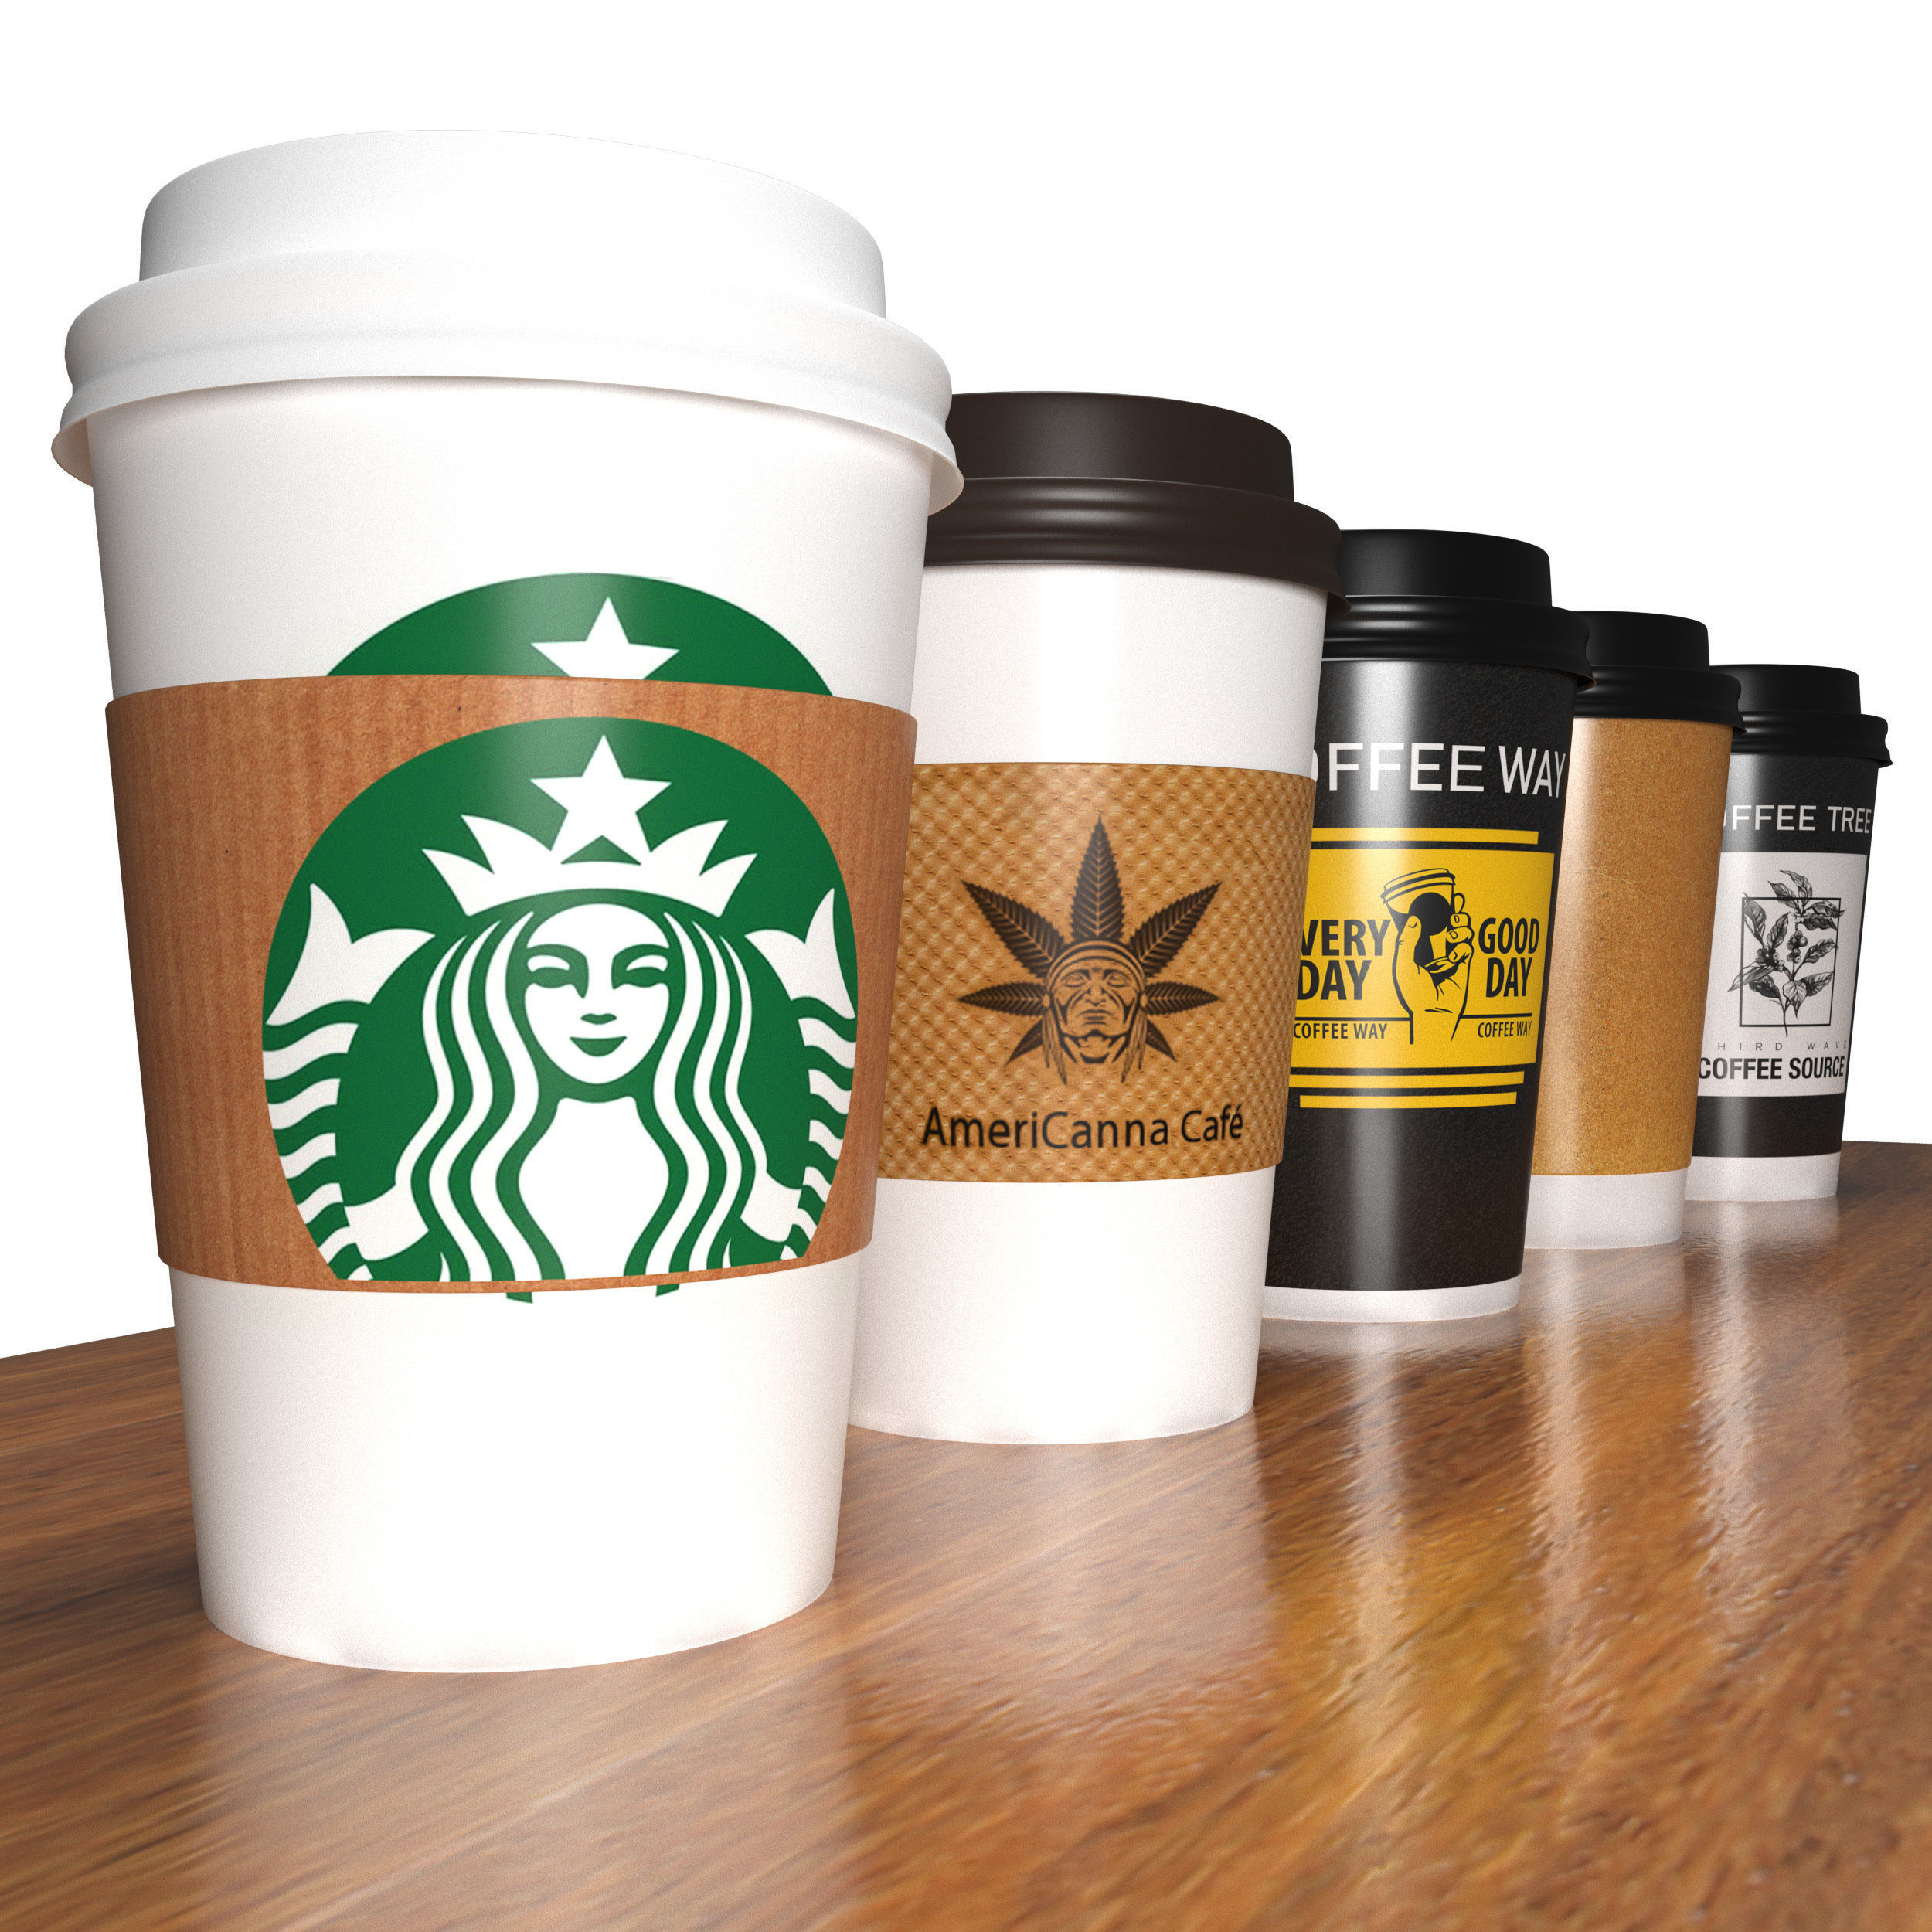 Takeout coffee cups